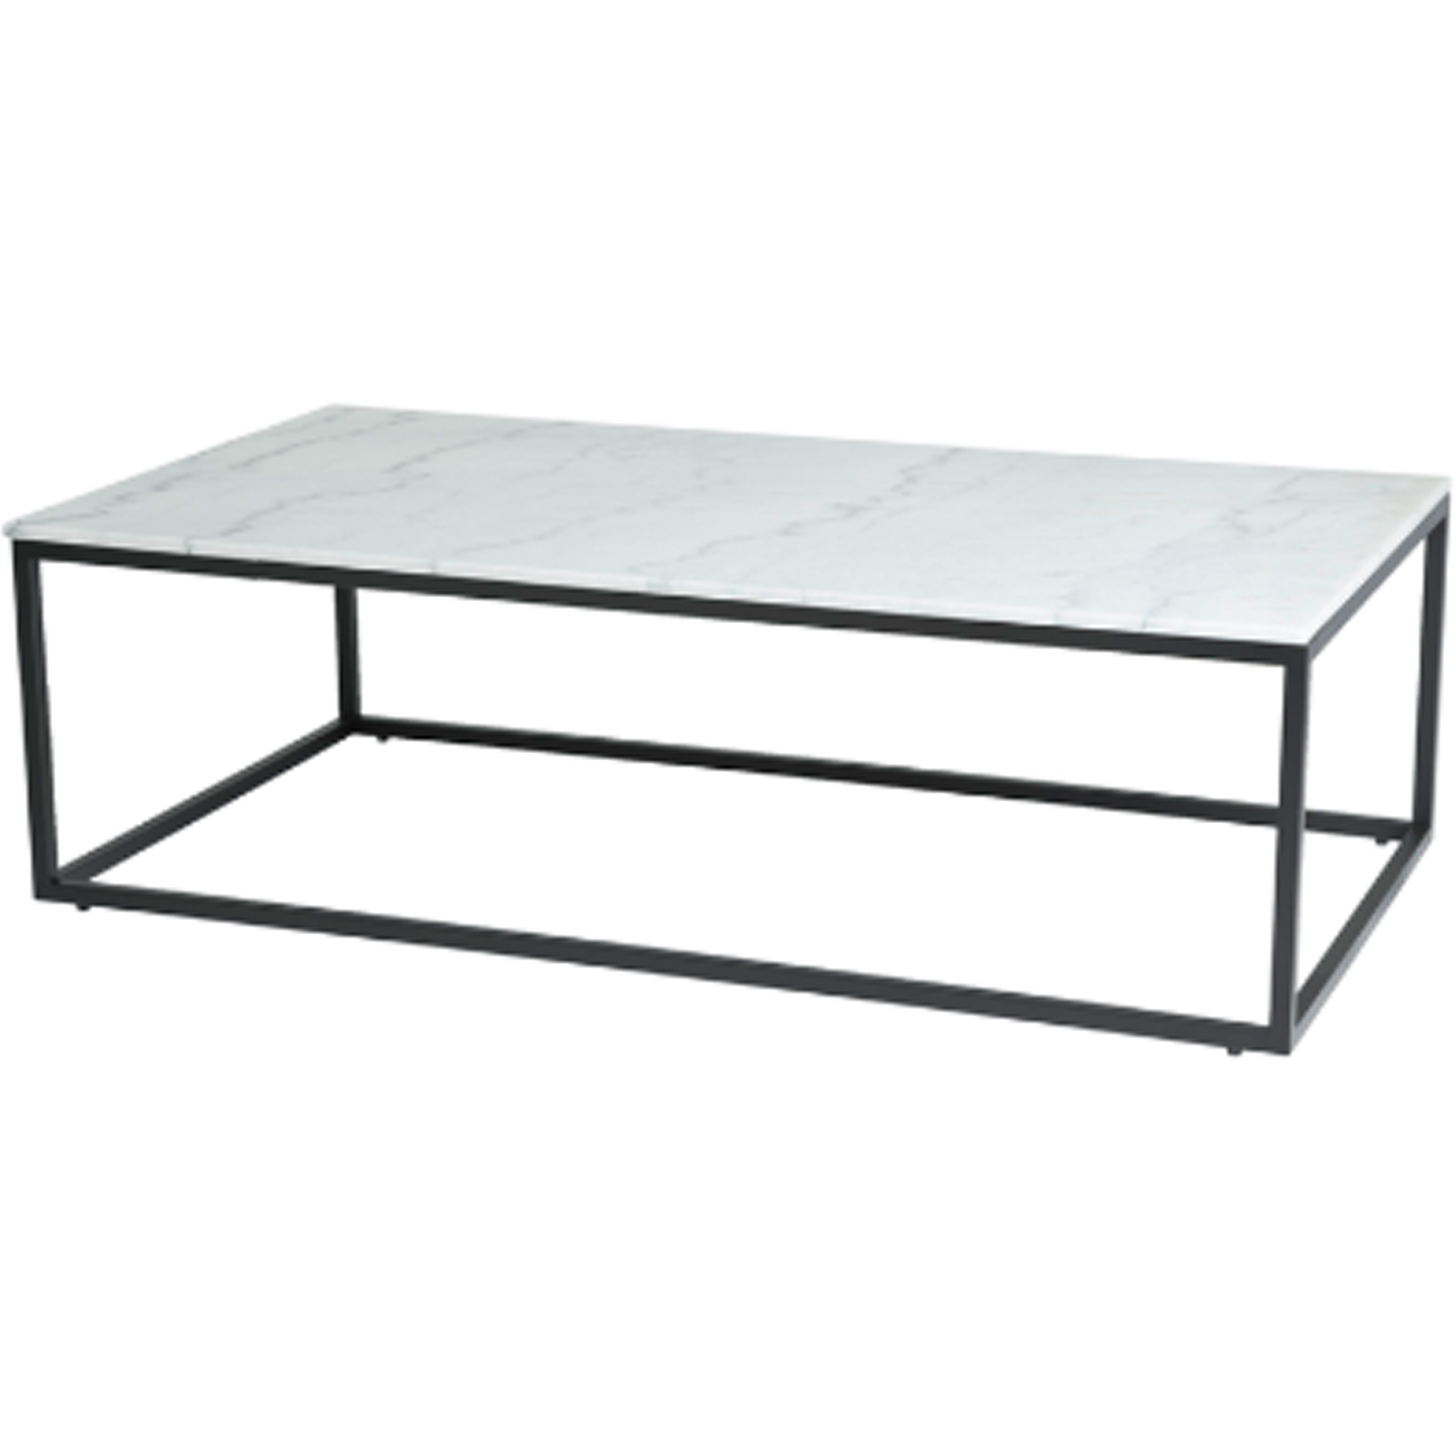 Verona Marble Coffee Table: Black And White Marble